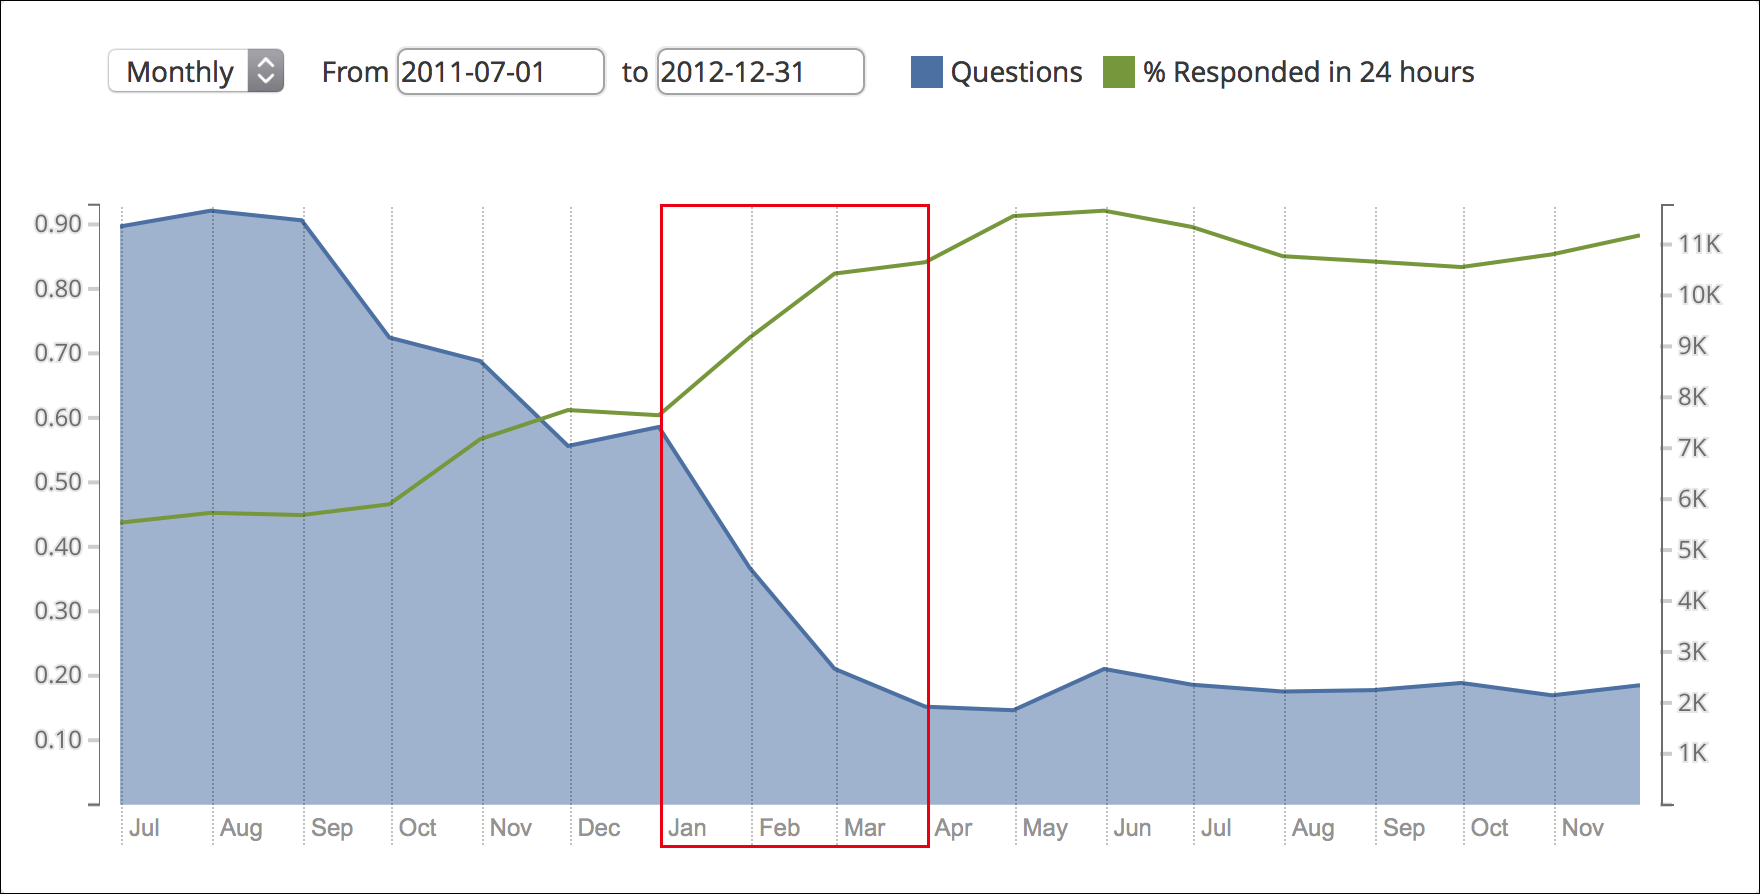 Iterative Testing Decreased Mozilla Support Calls By 70%